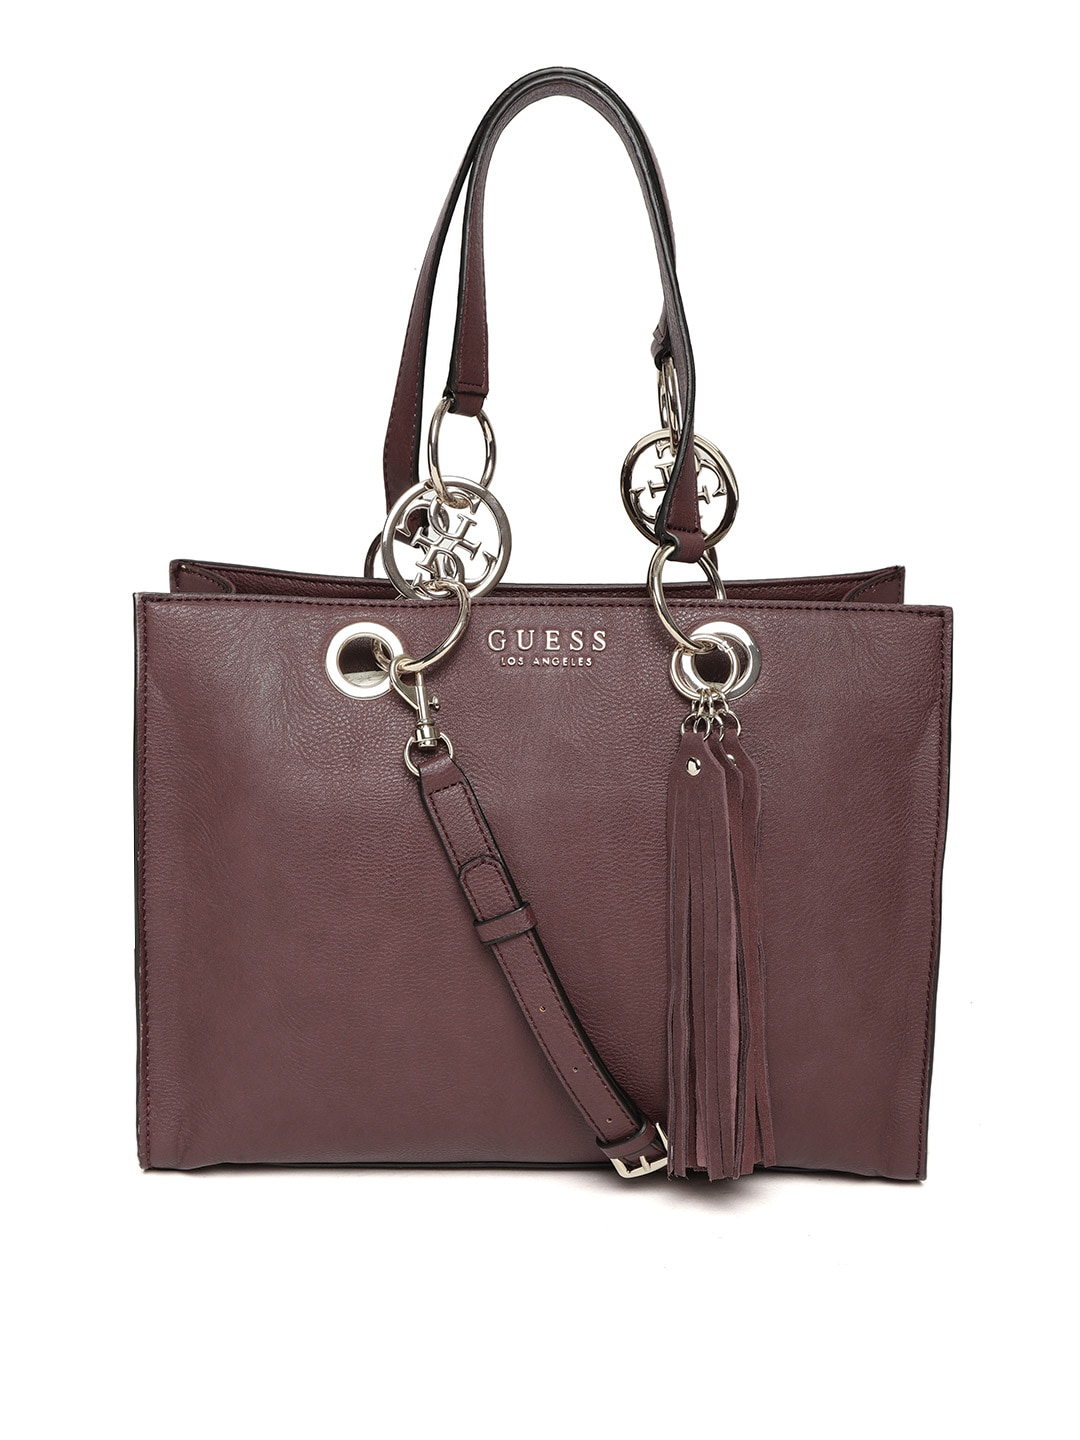 f802495e62 Guess Handbags - Buy Guess Handbags online in India